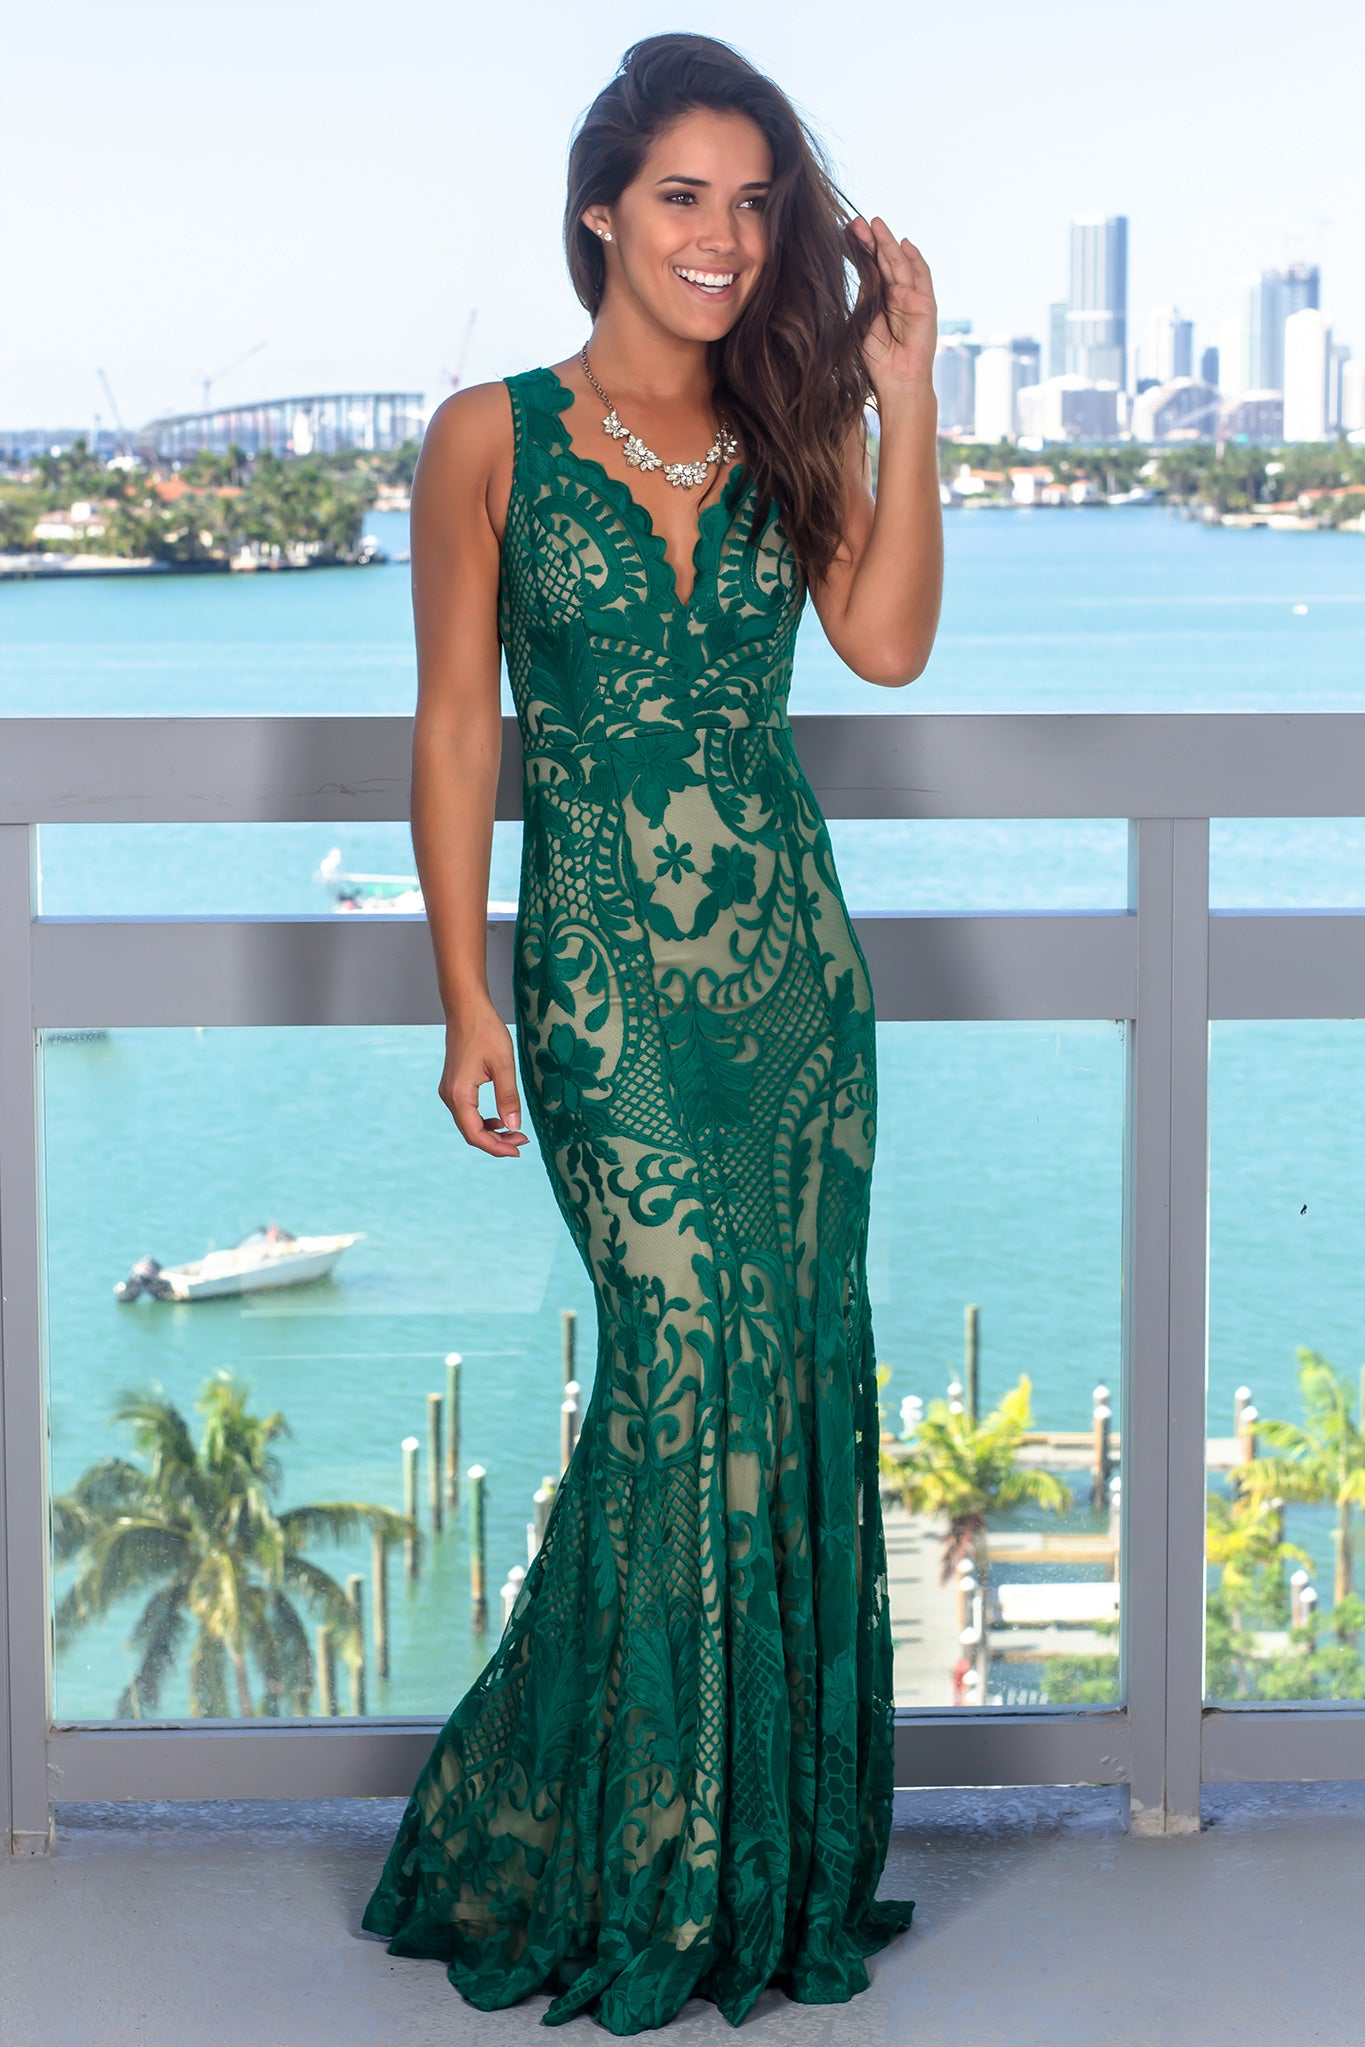 Green and Nude Embroidered Maxi Dress